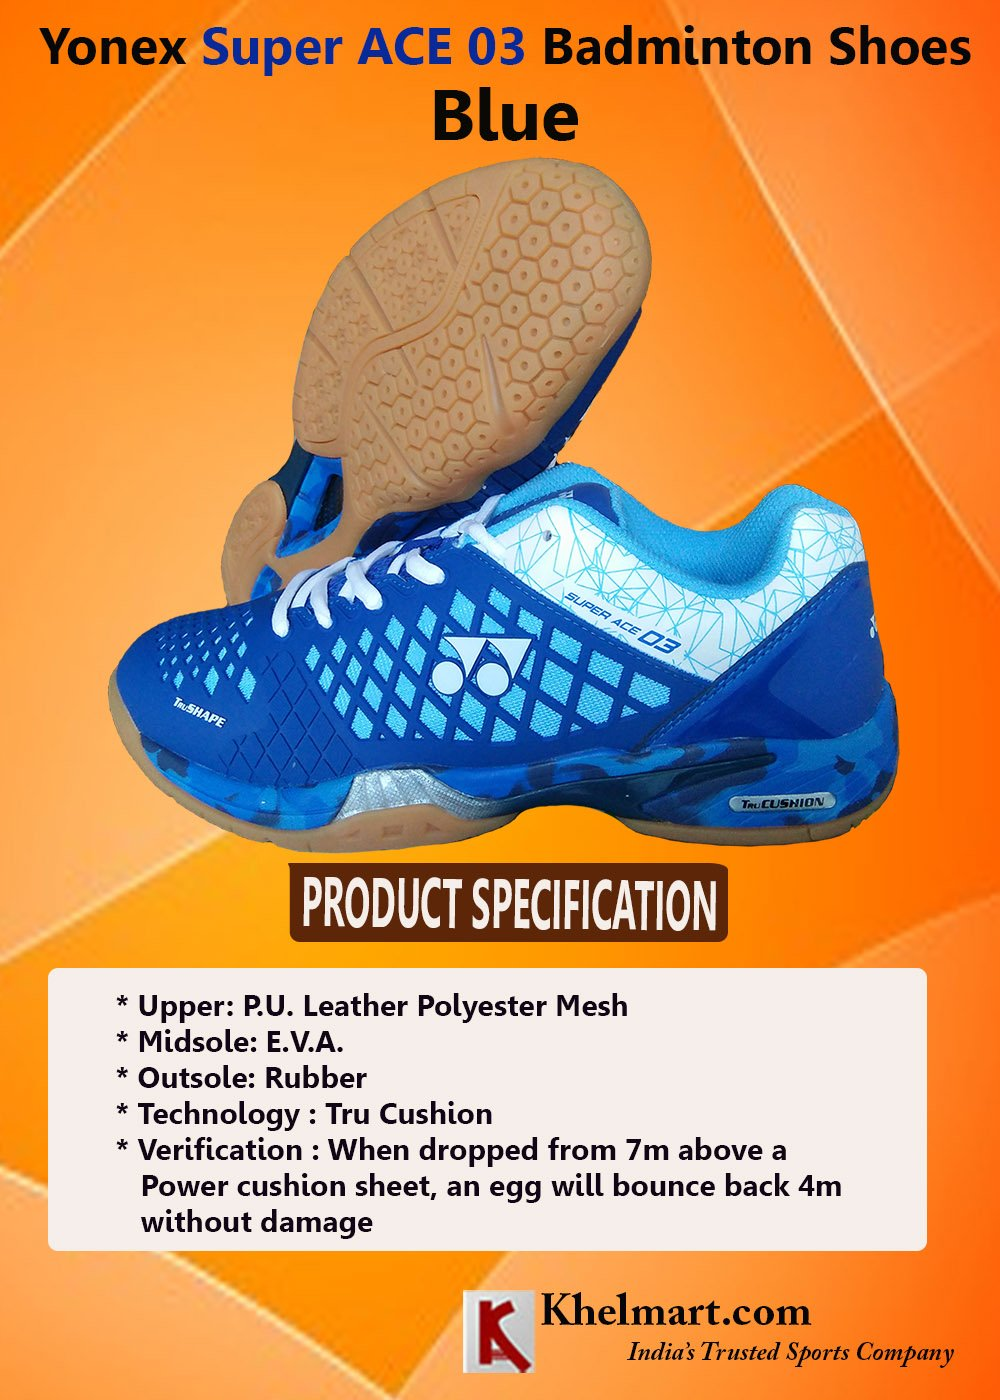 Yonex-Super-ACE-03-Badminton-Shoes-Blue_1.jpg